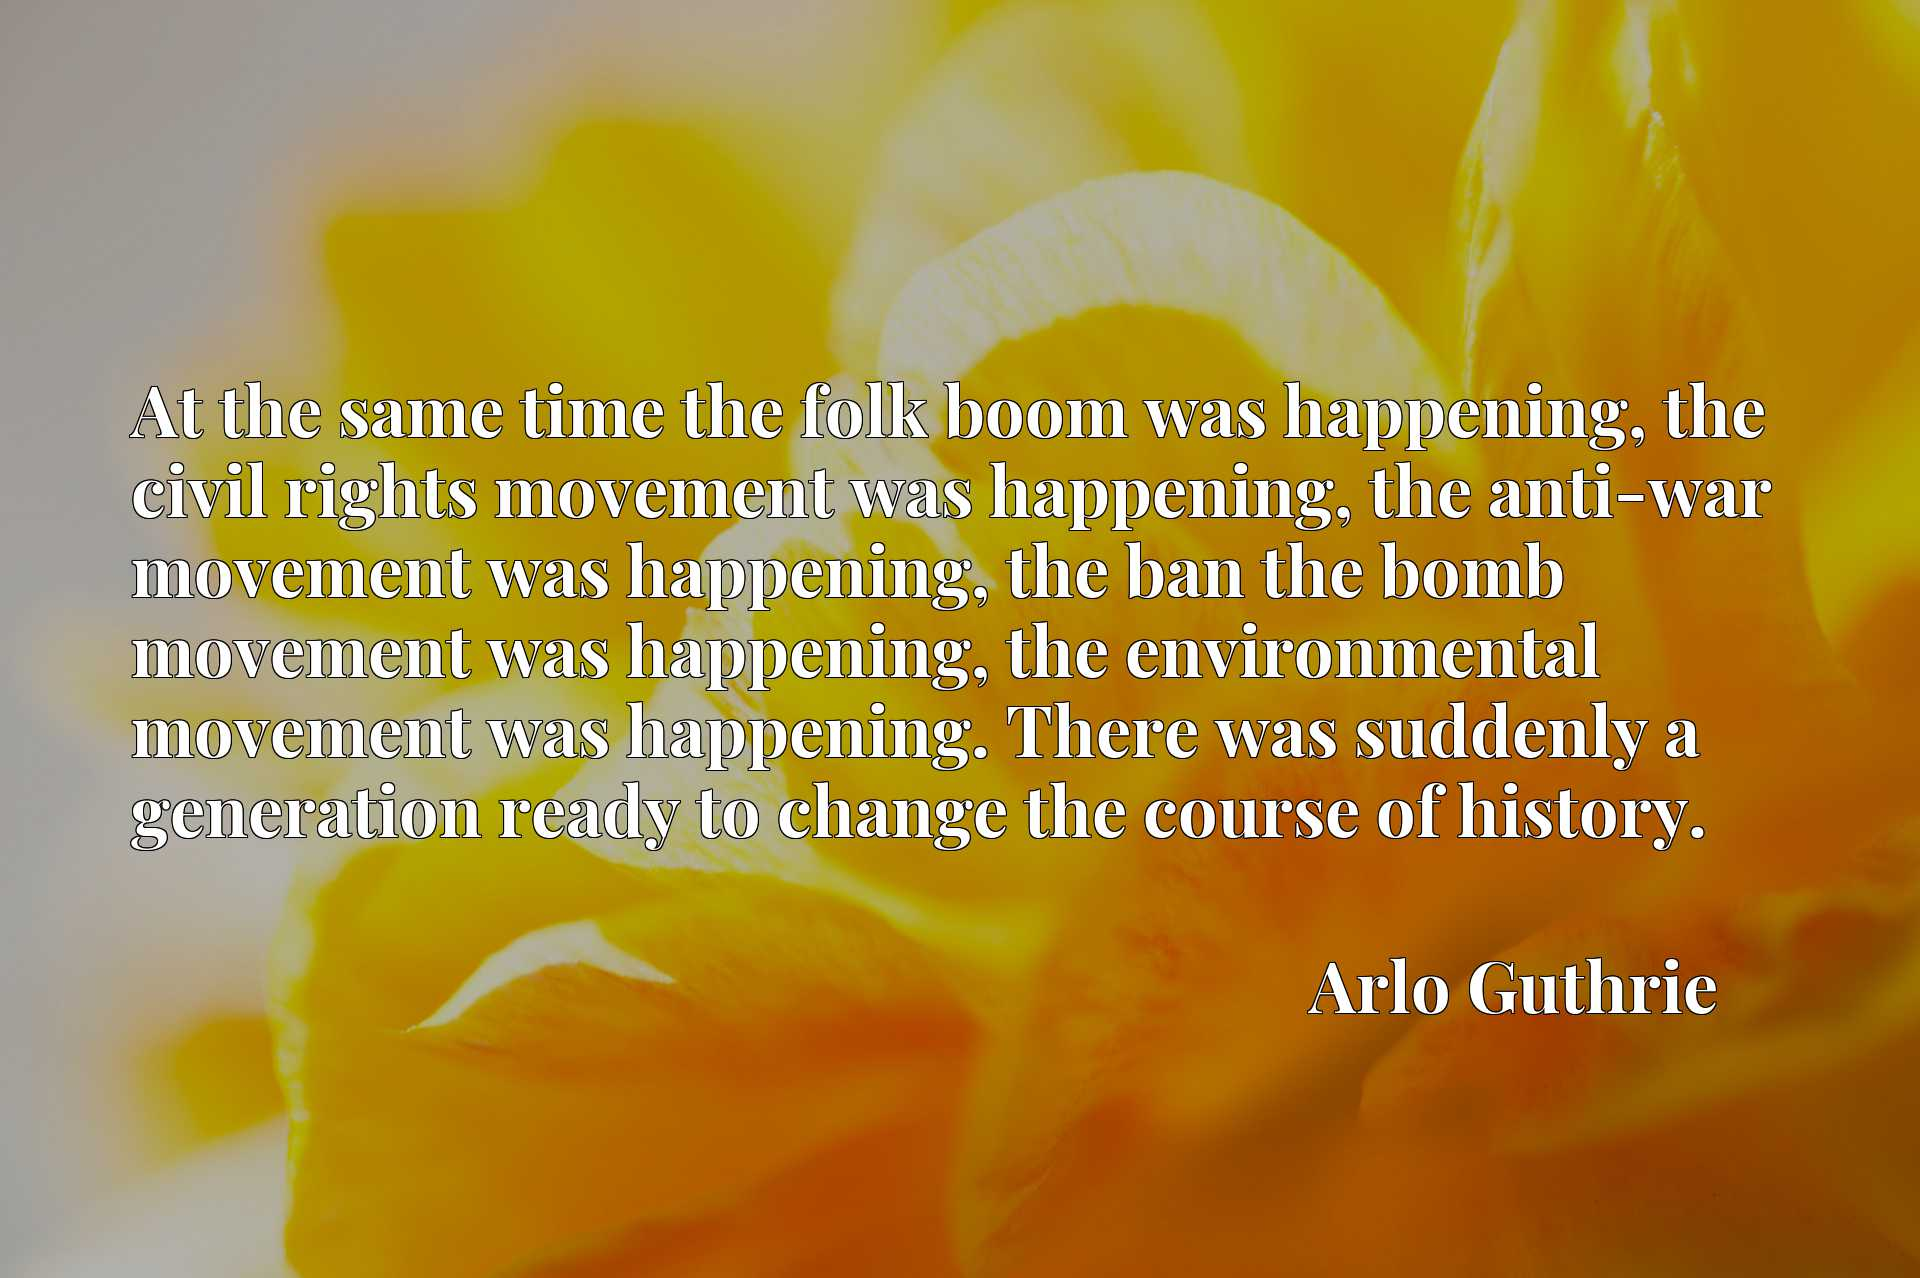 At the same time the folk boom was happening, the civil rights movement was happening, the anti-war movement was happening, the ban the bomb movement was happening, the environmental movement was happening. There was suddenly a generation ready to change the course of history.